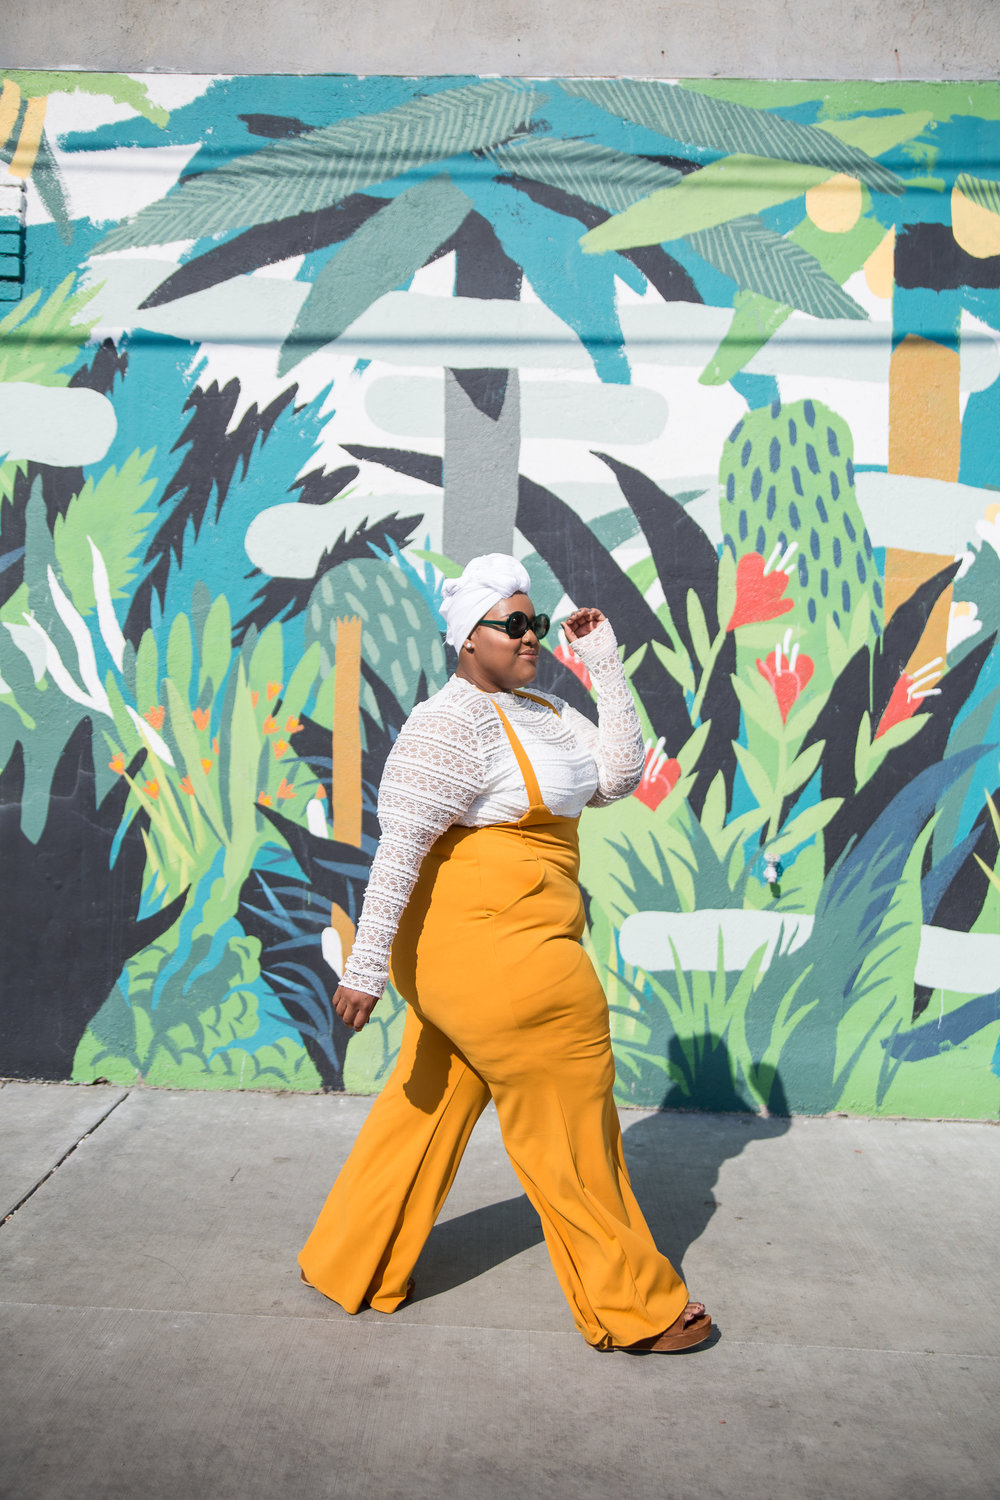 Leah-Vernon-Plus-Size-Model-Muslim-Body-Positive-Black-Girl-Detroit-Style-Blogger-1.jpg